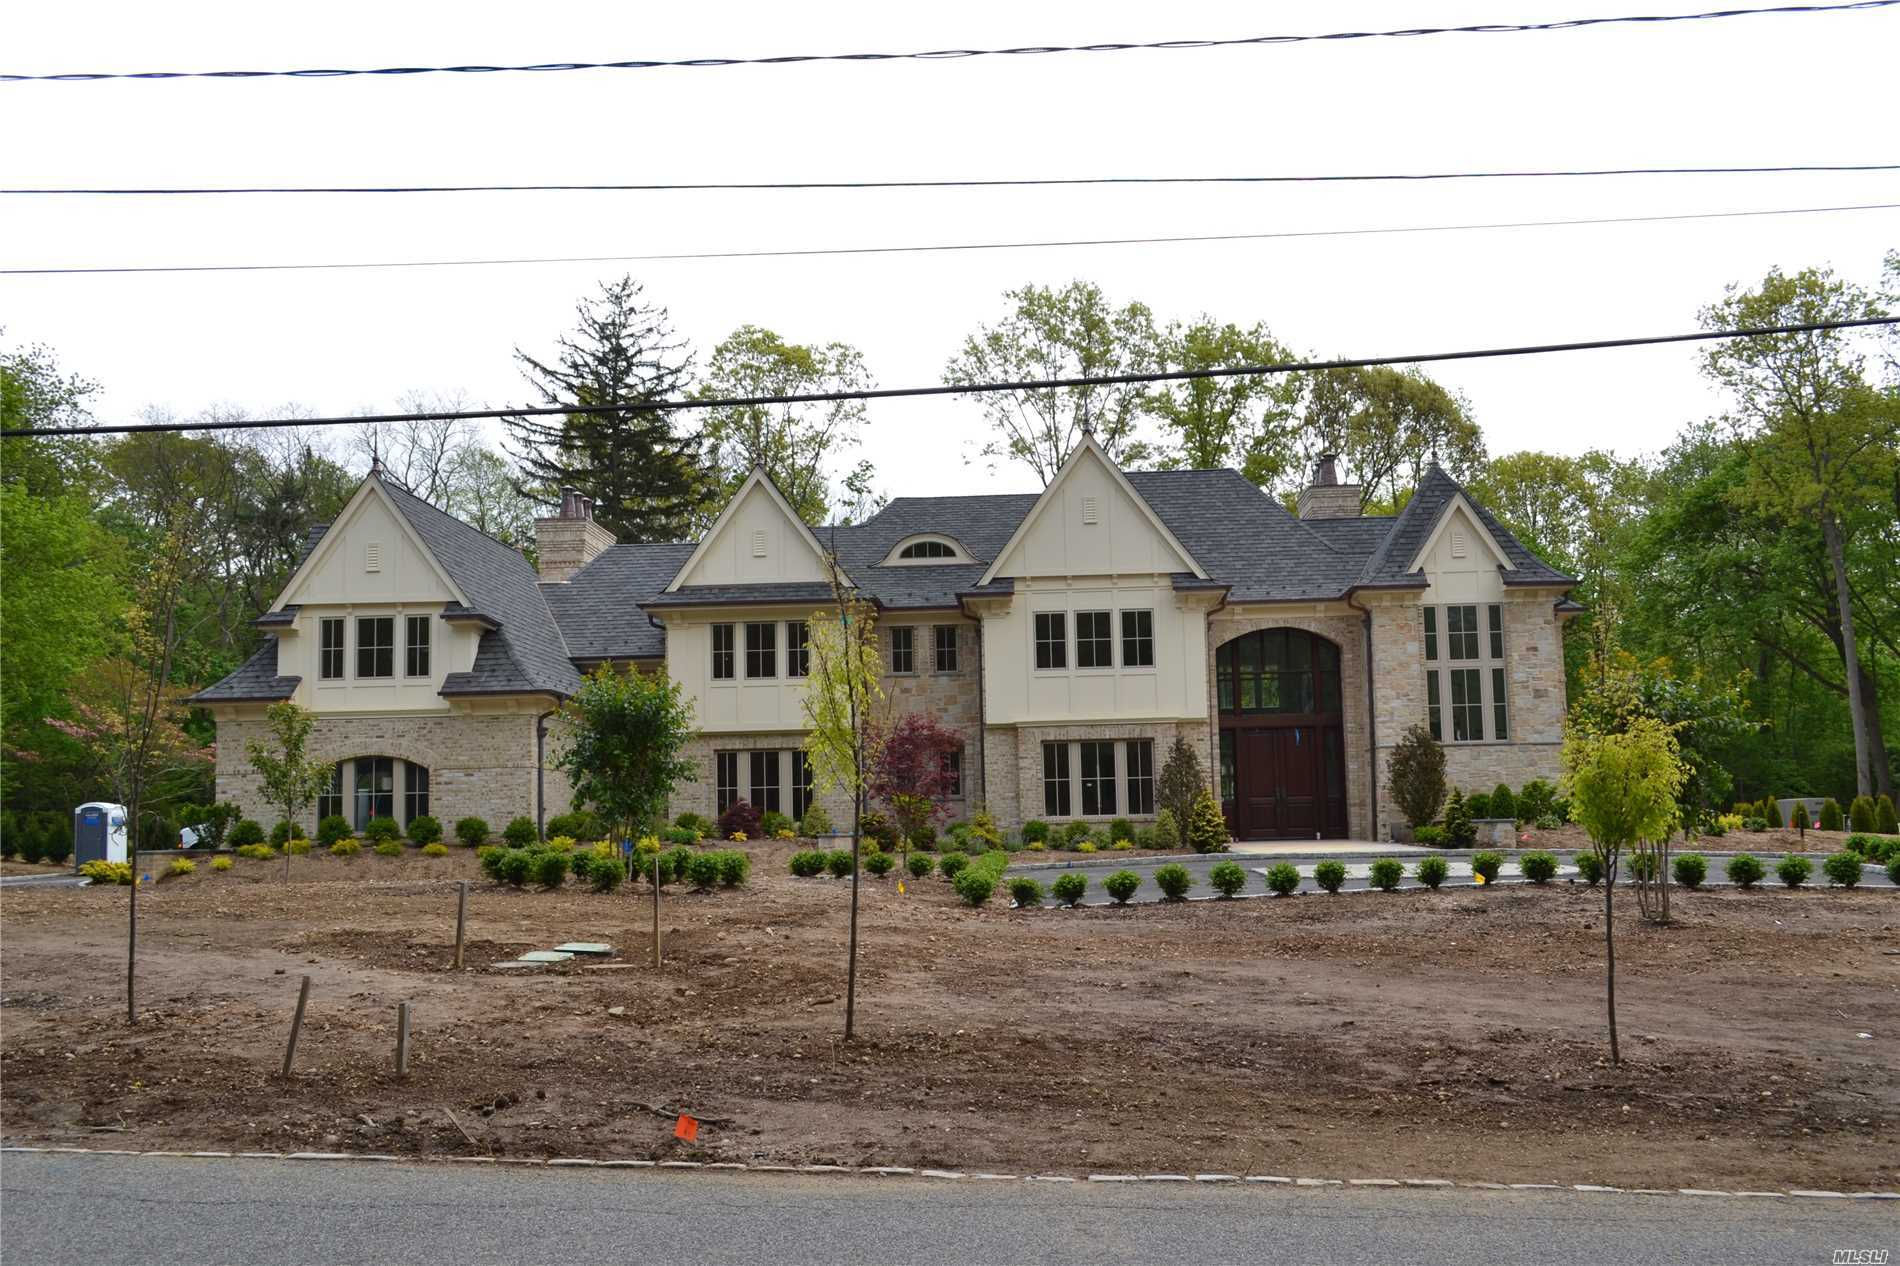 Exquisite New Construction Built By Highly Acclaimed Napoleon Development. Situated On A Spectacular 2 Acre Flat Lot, This Home Will Offer Exceptional Luxury Living With Refreshing And Modern Appointments. Highly Detailed And Refined Crafted Home Features Handmade Brick, Full Bed Stone, Elevator, In Ground Pool And Incorporates A Sensible Open Floor Plan.  Finished Lower Level With Sauna, Bar, Gym, Theater Room And Wine Cellar.  Jericho Sd.